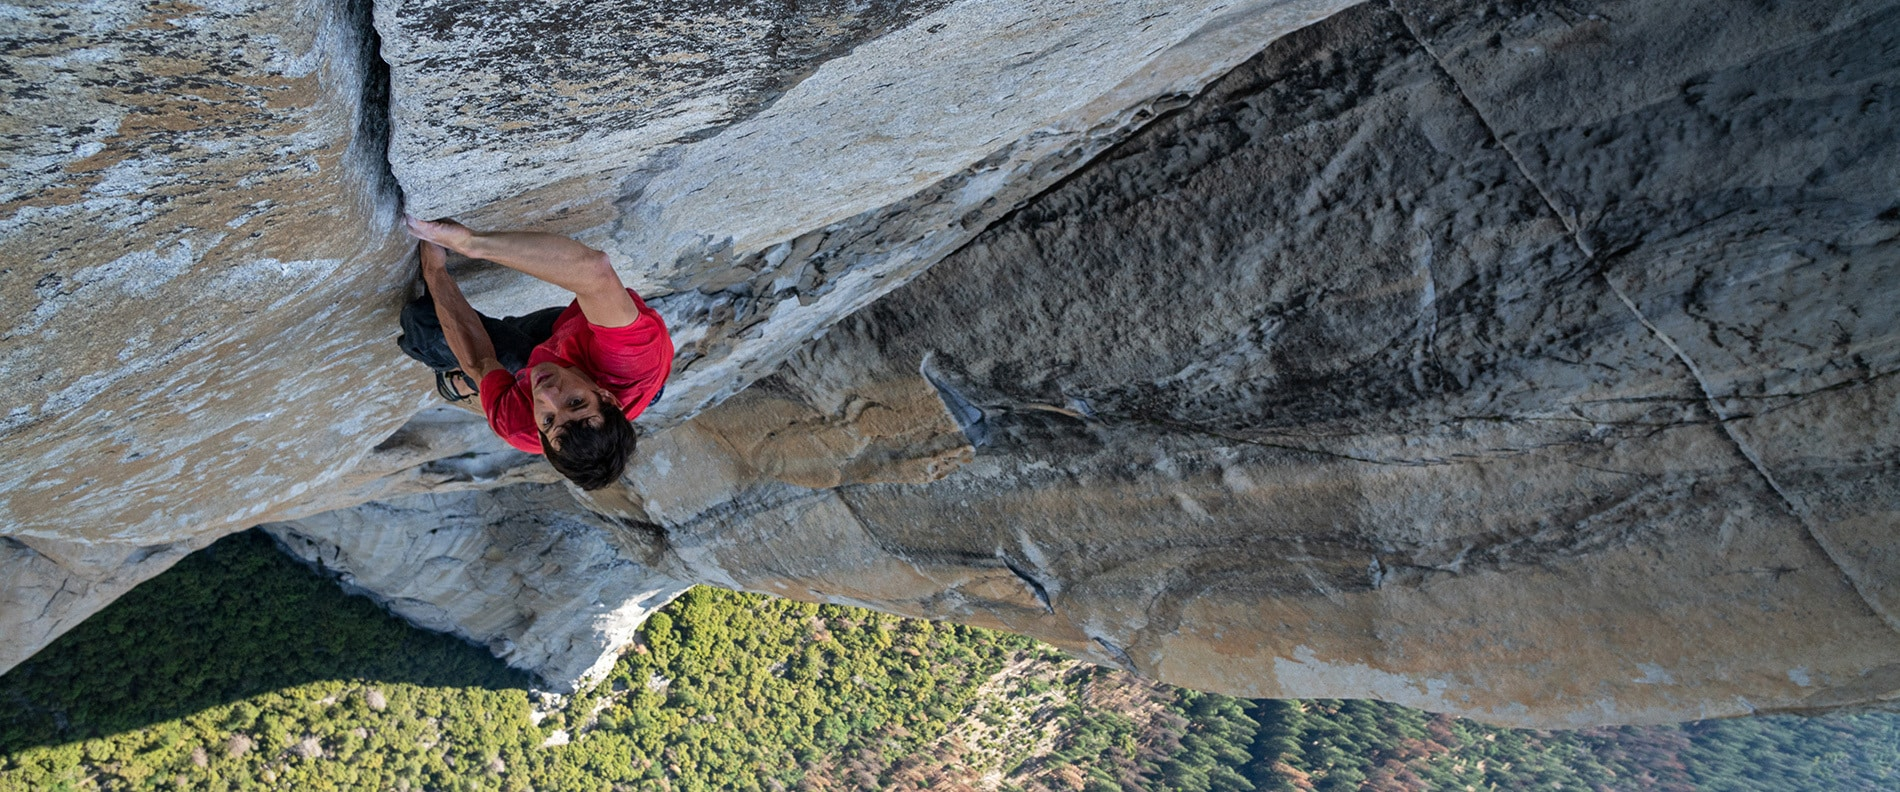 Free Solo - Hero - Film Site (No Gradient)